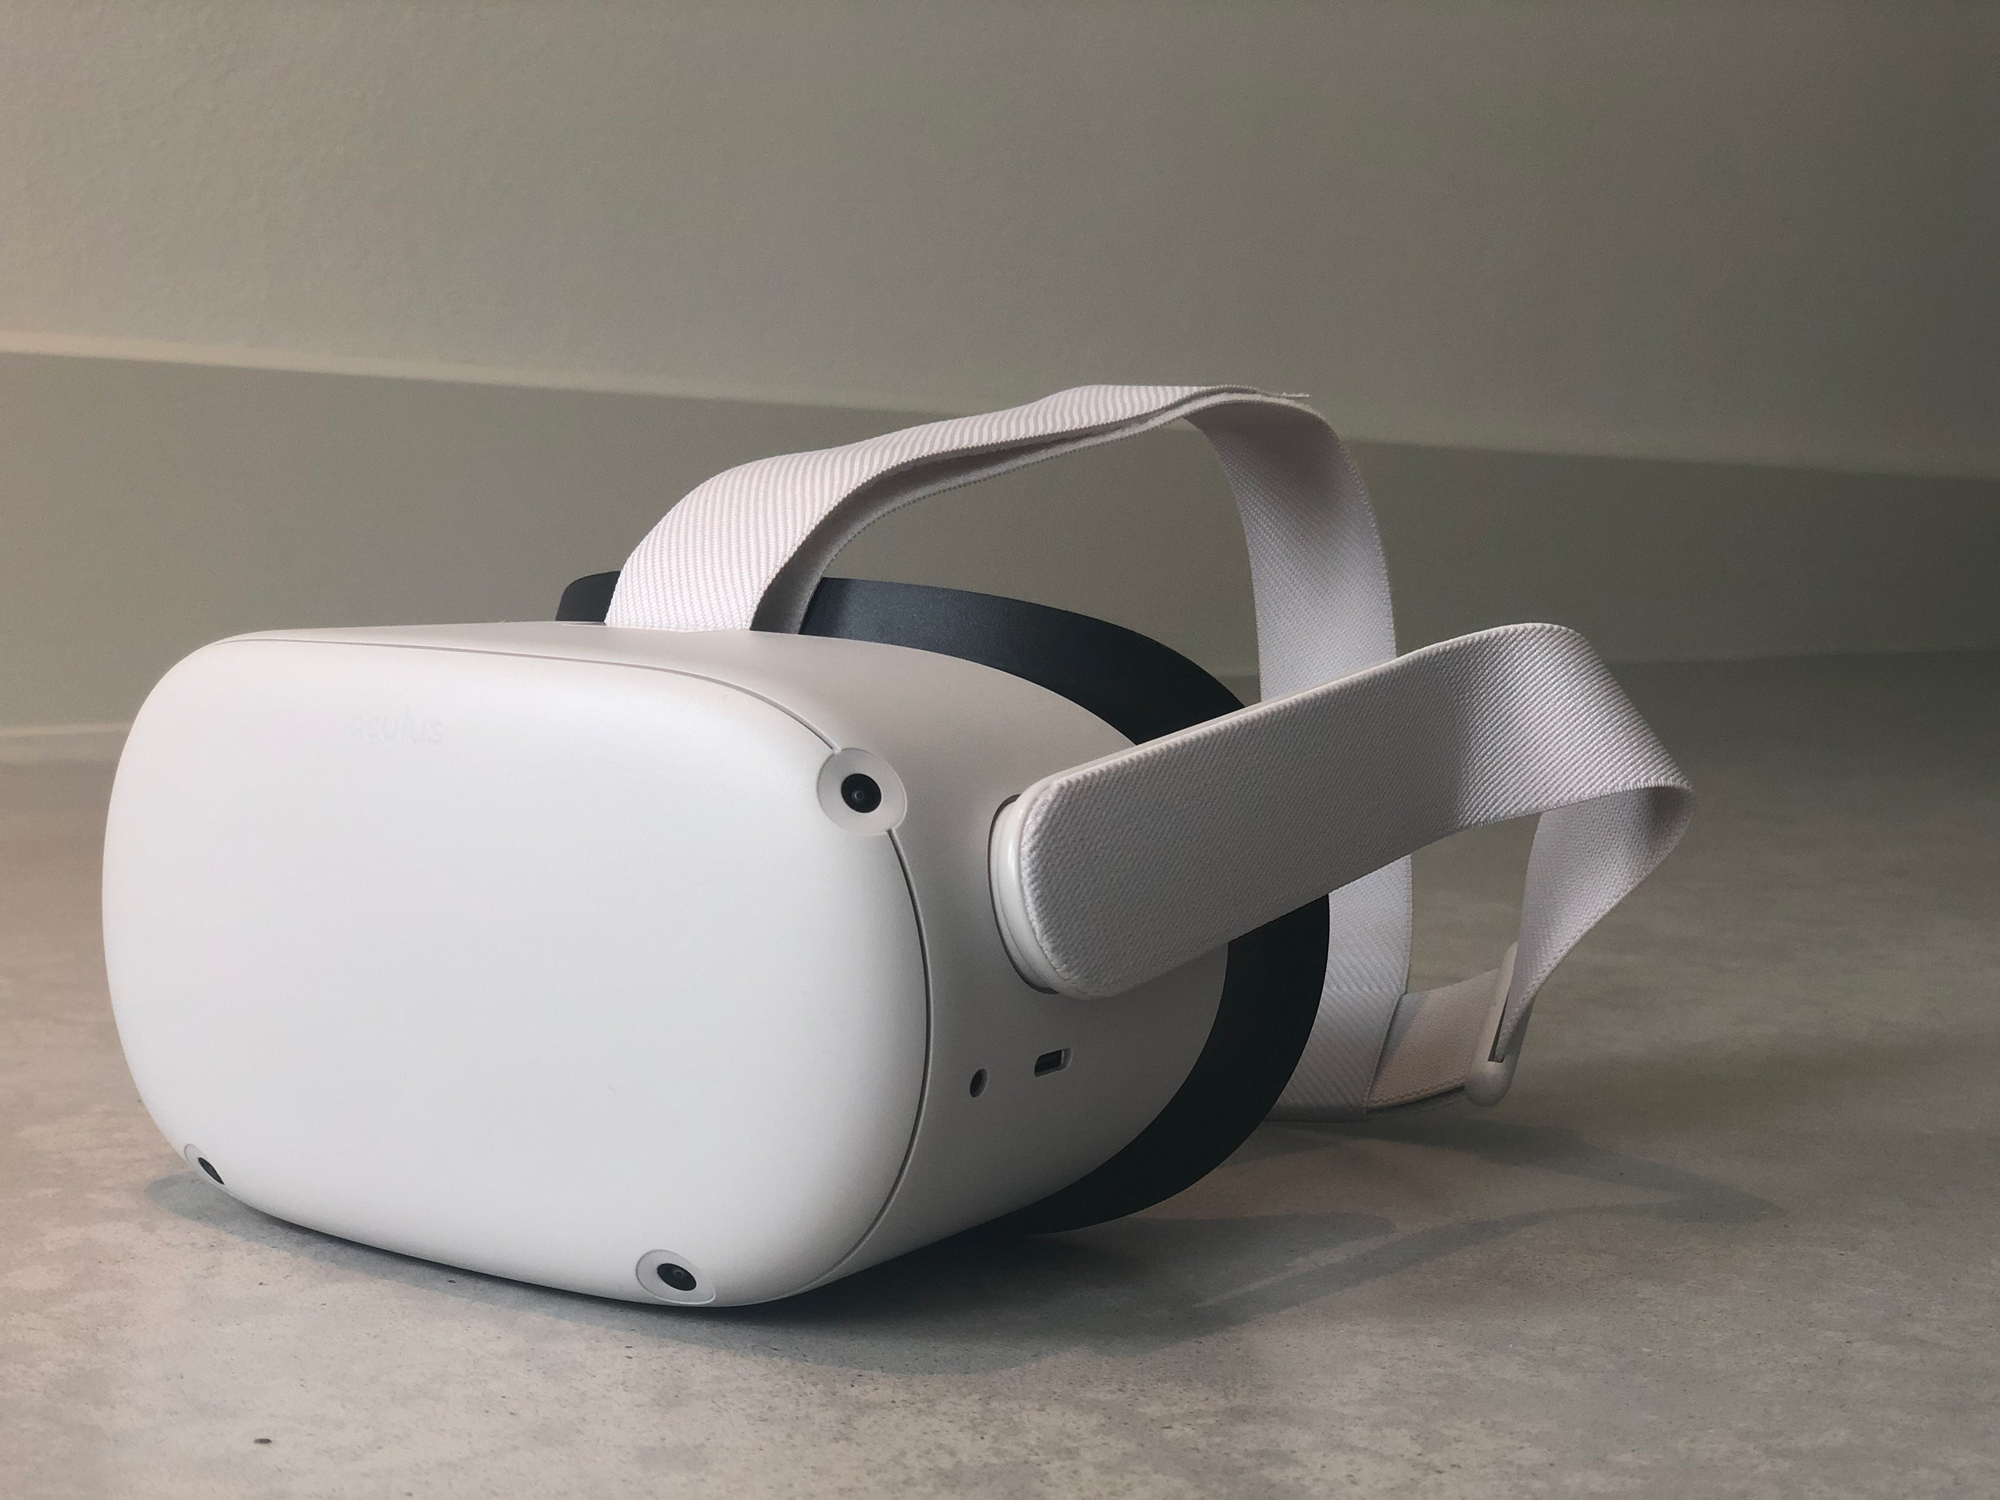 The VR headset Oculus Quest 2